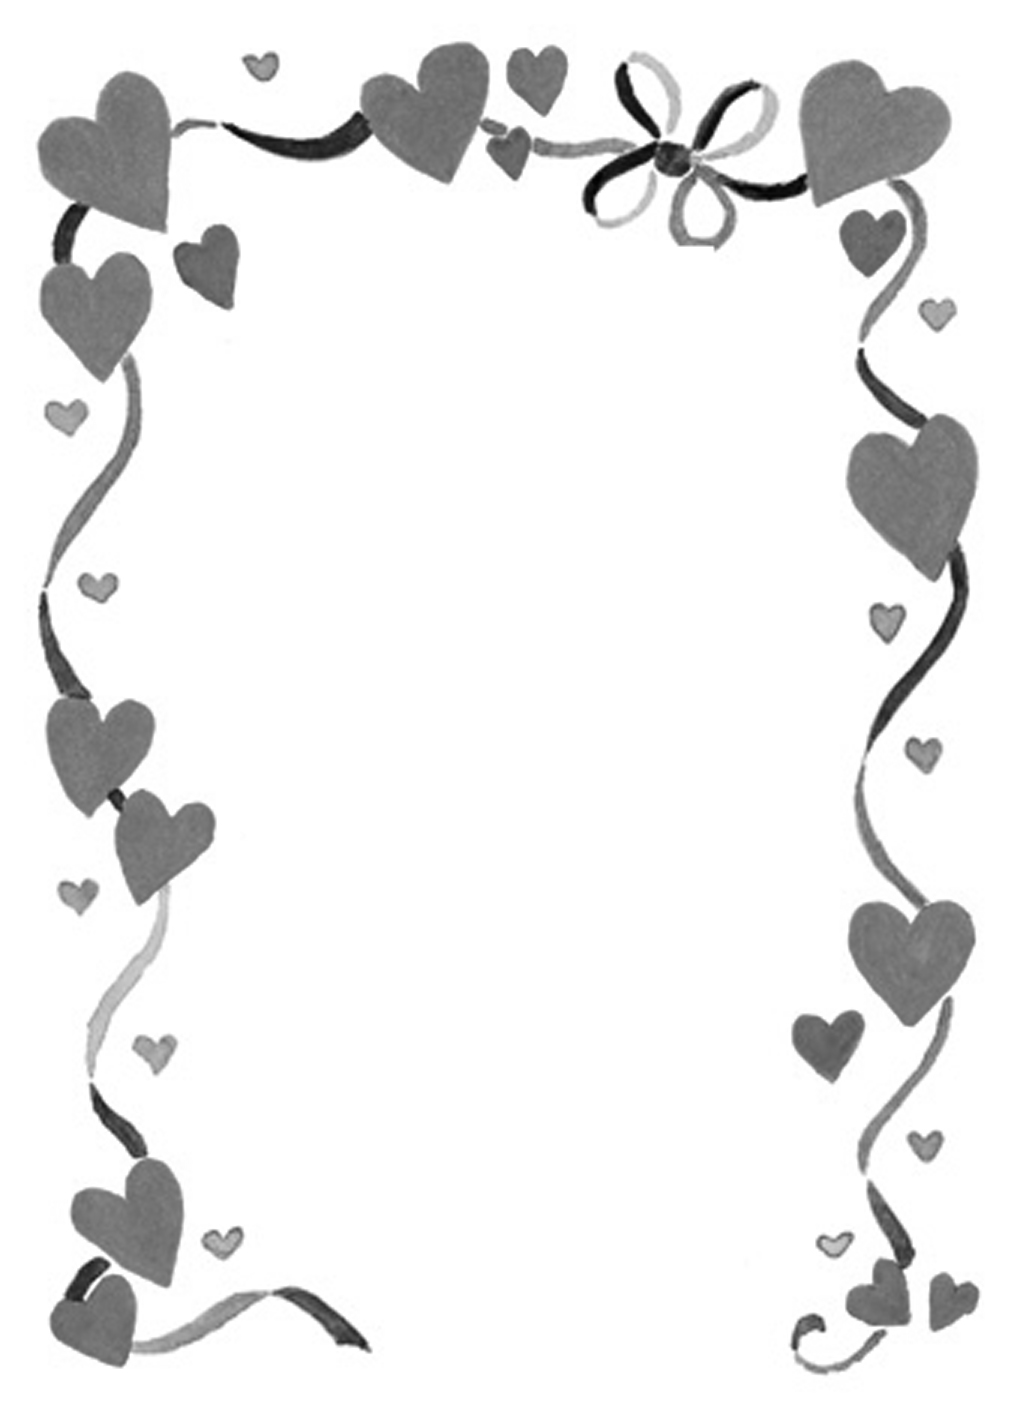 Printable Wedding Borders moreover Pictures Of Musical Notes And Symbols additionally The Lion King At Detroit Opera House in addition August 10 Happy Birthday Snoopy 8 10 15 furthermore Giving Money Clipart Black And White 24061. on broadway clip art